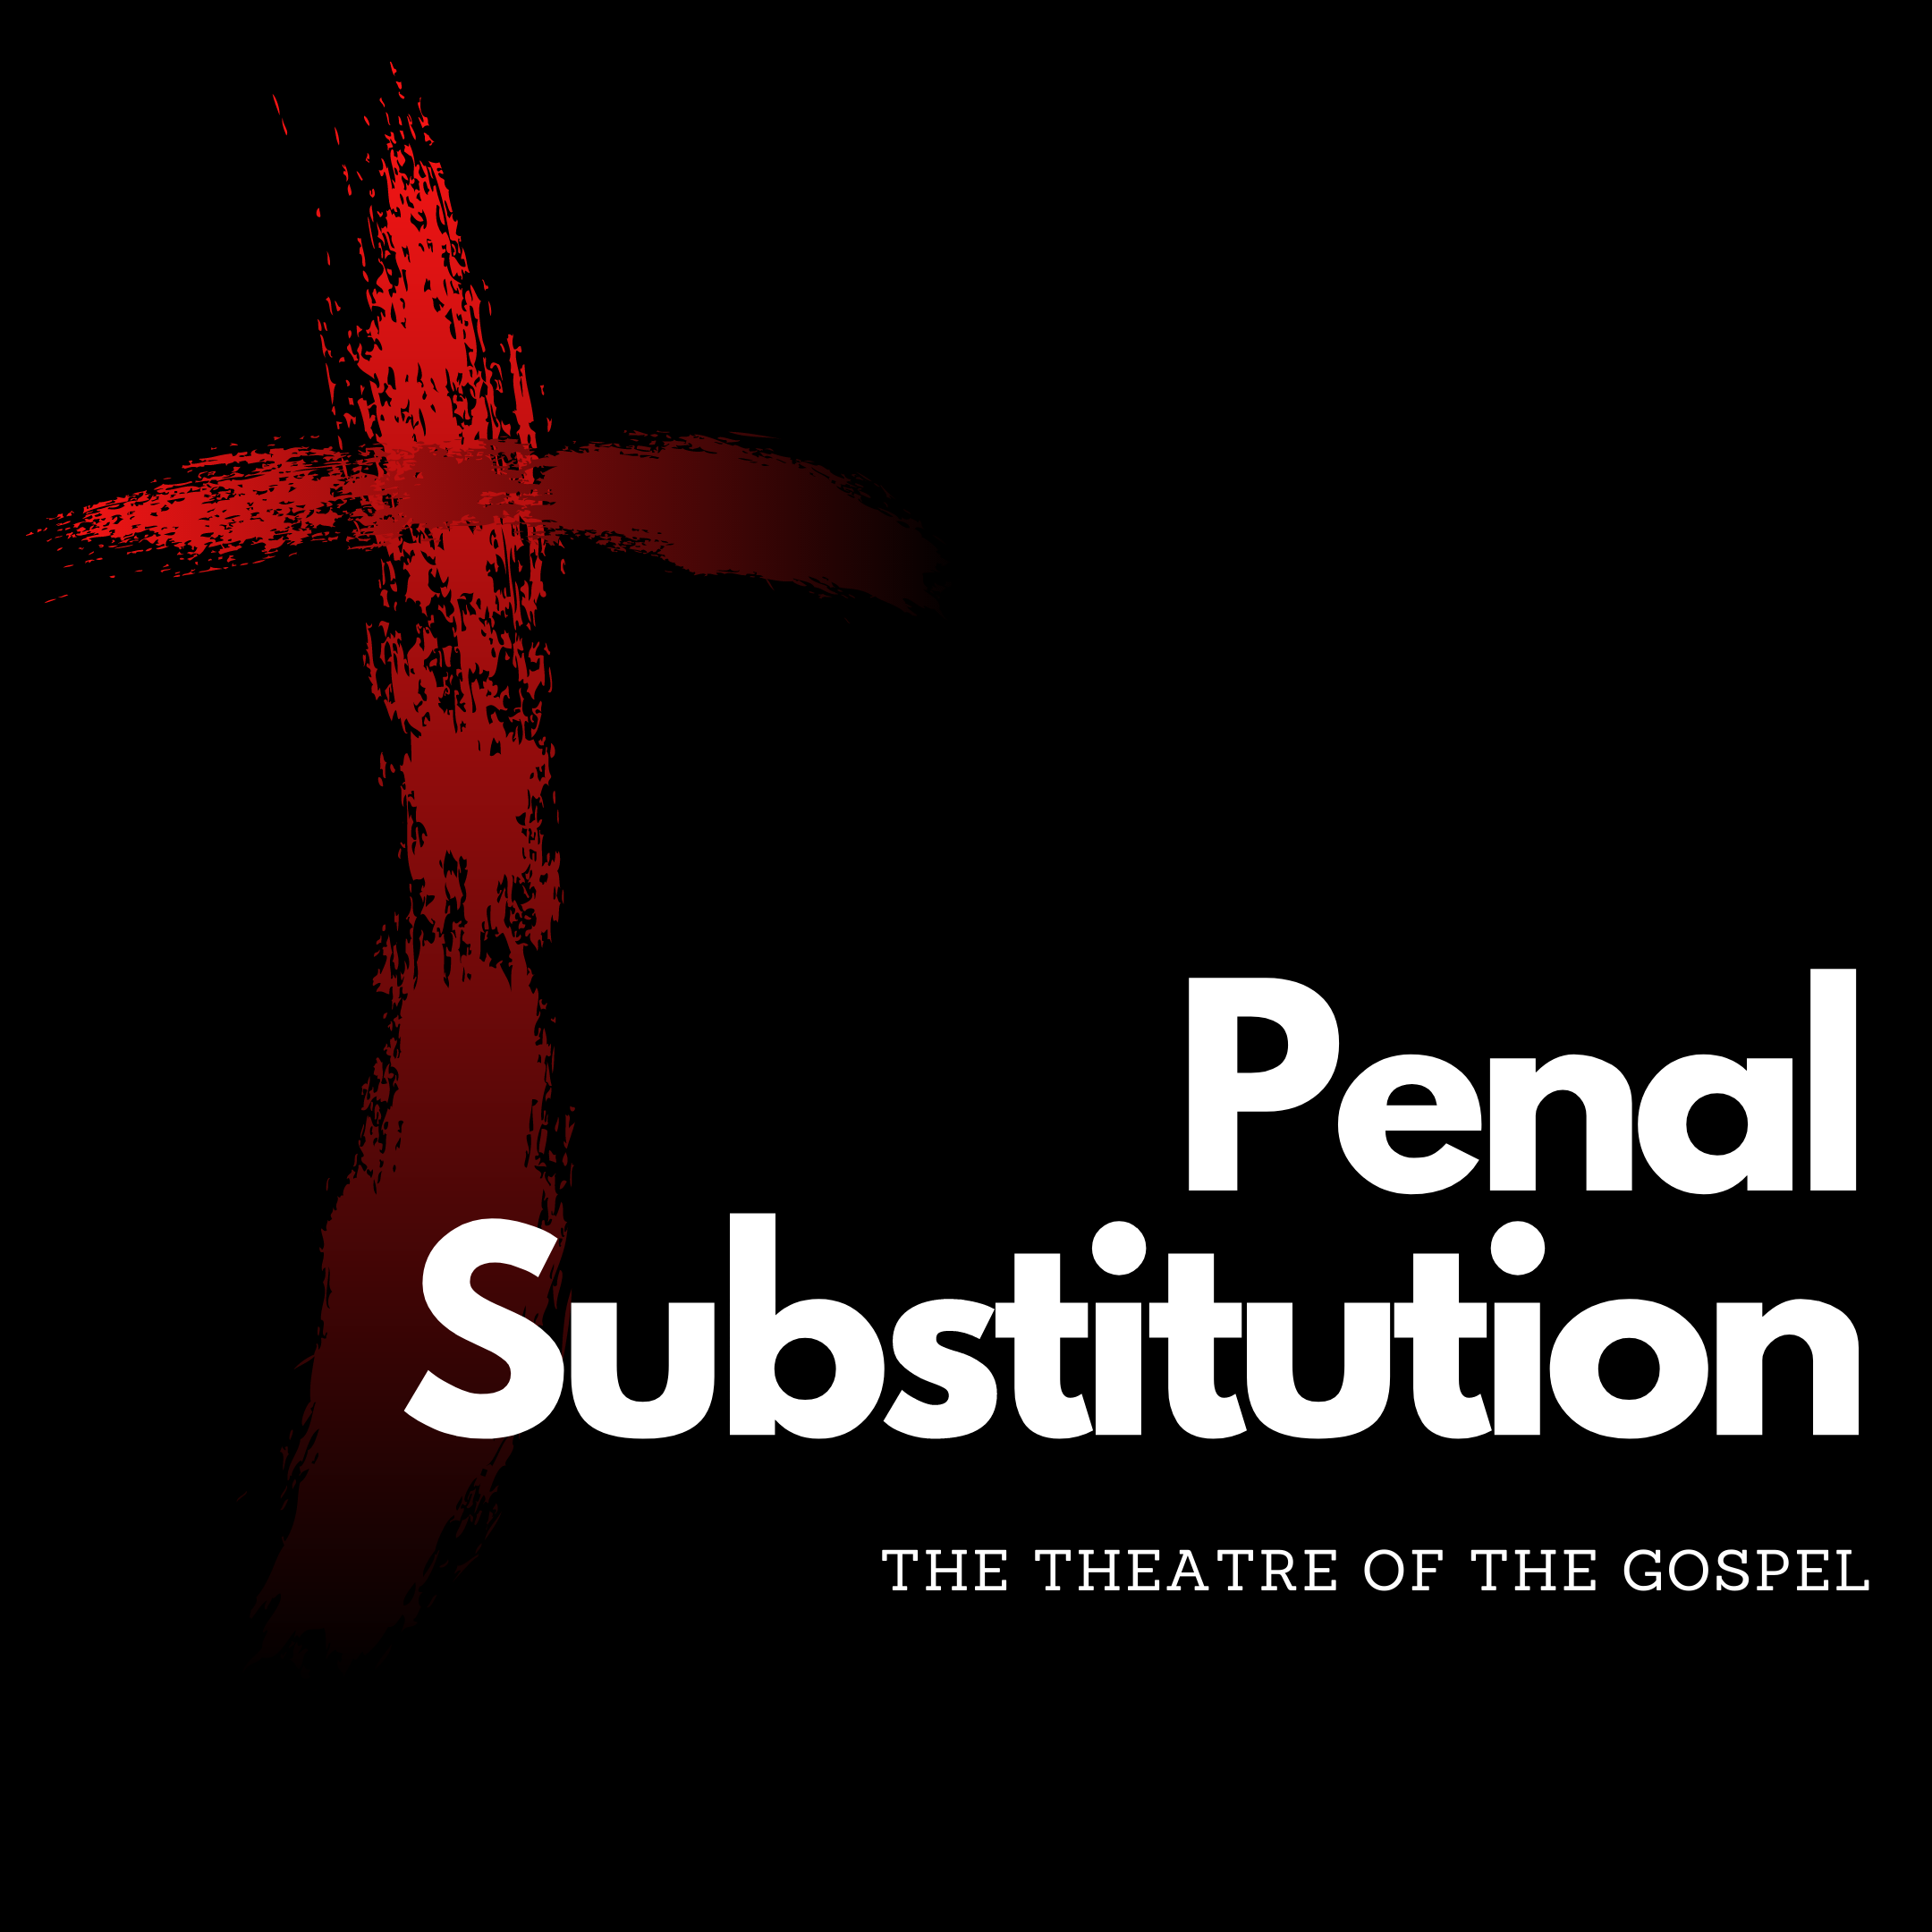 penal substitution ig